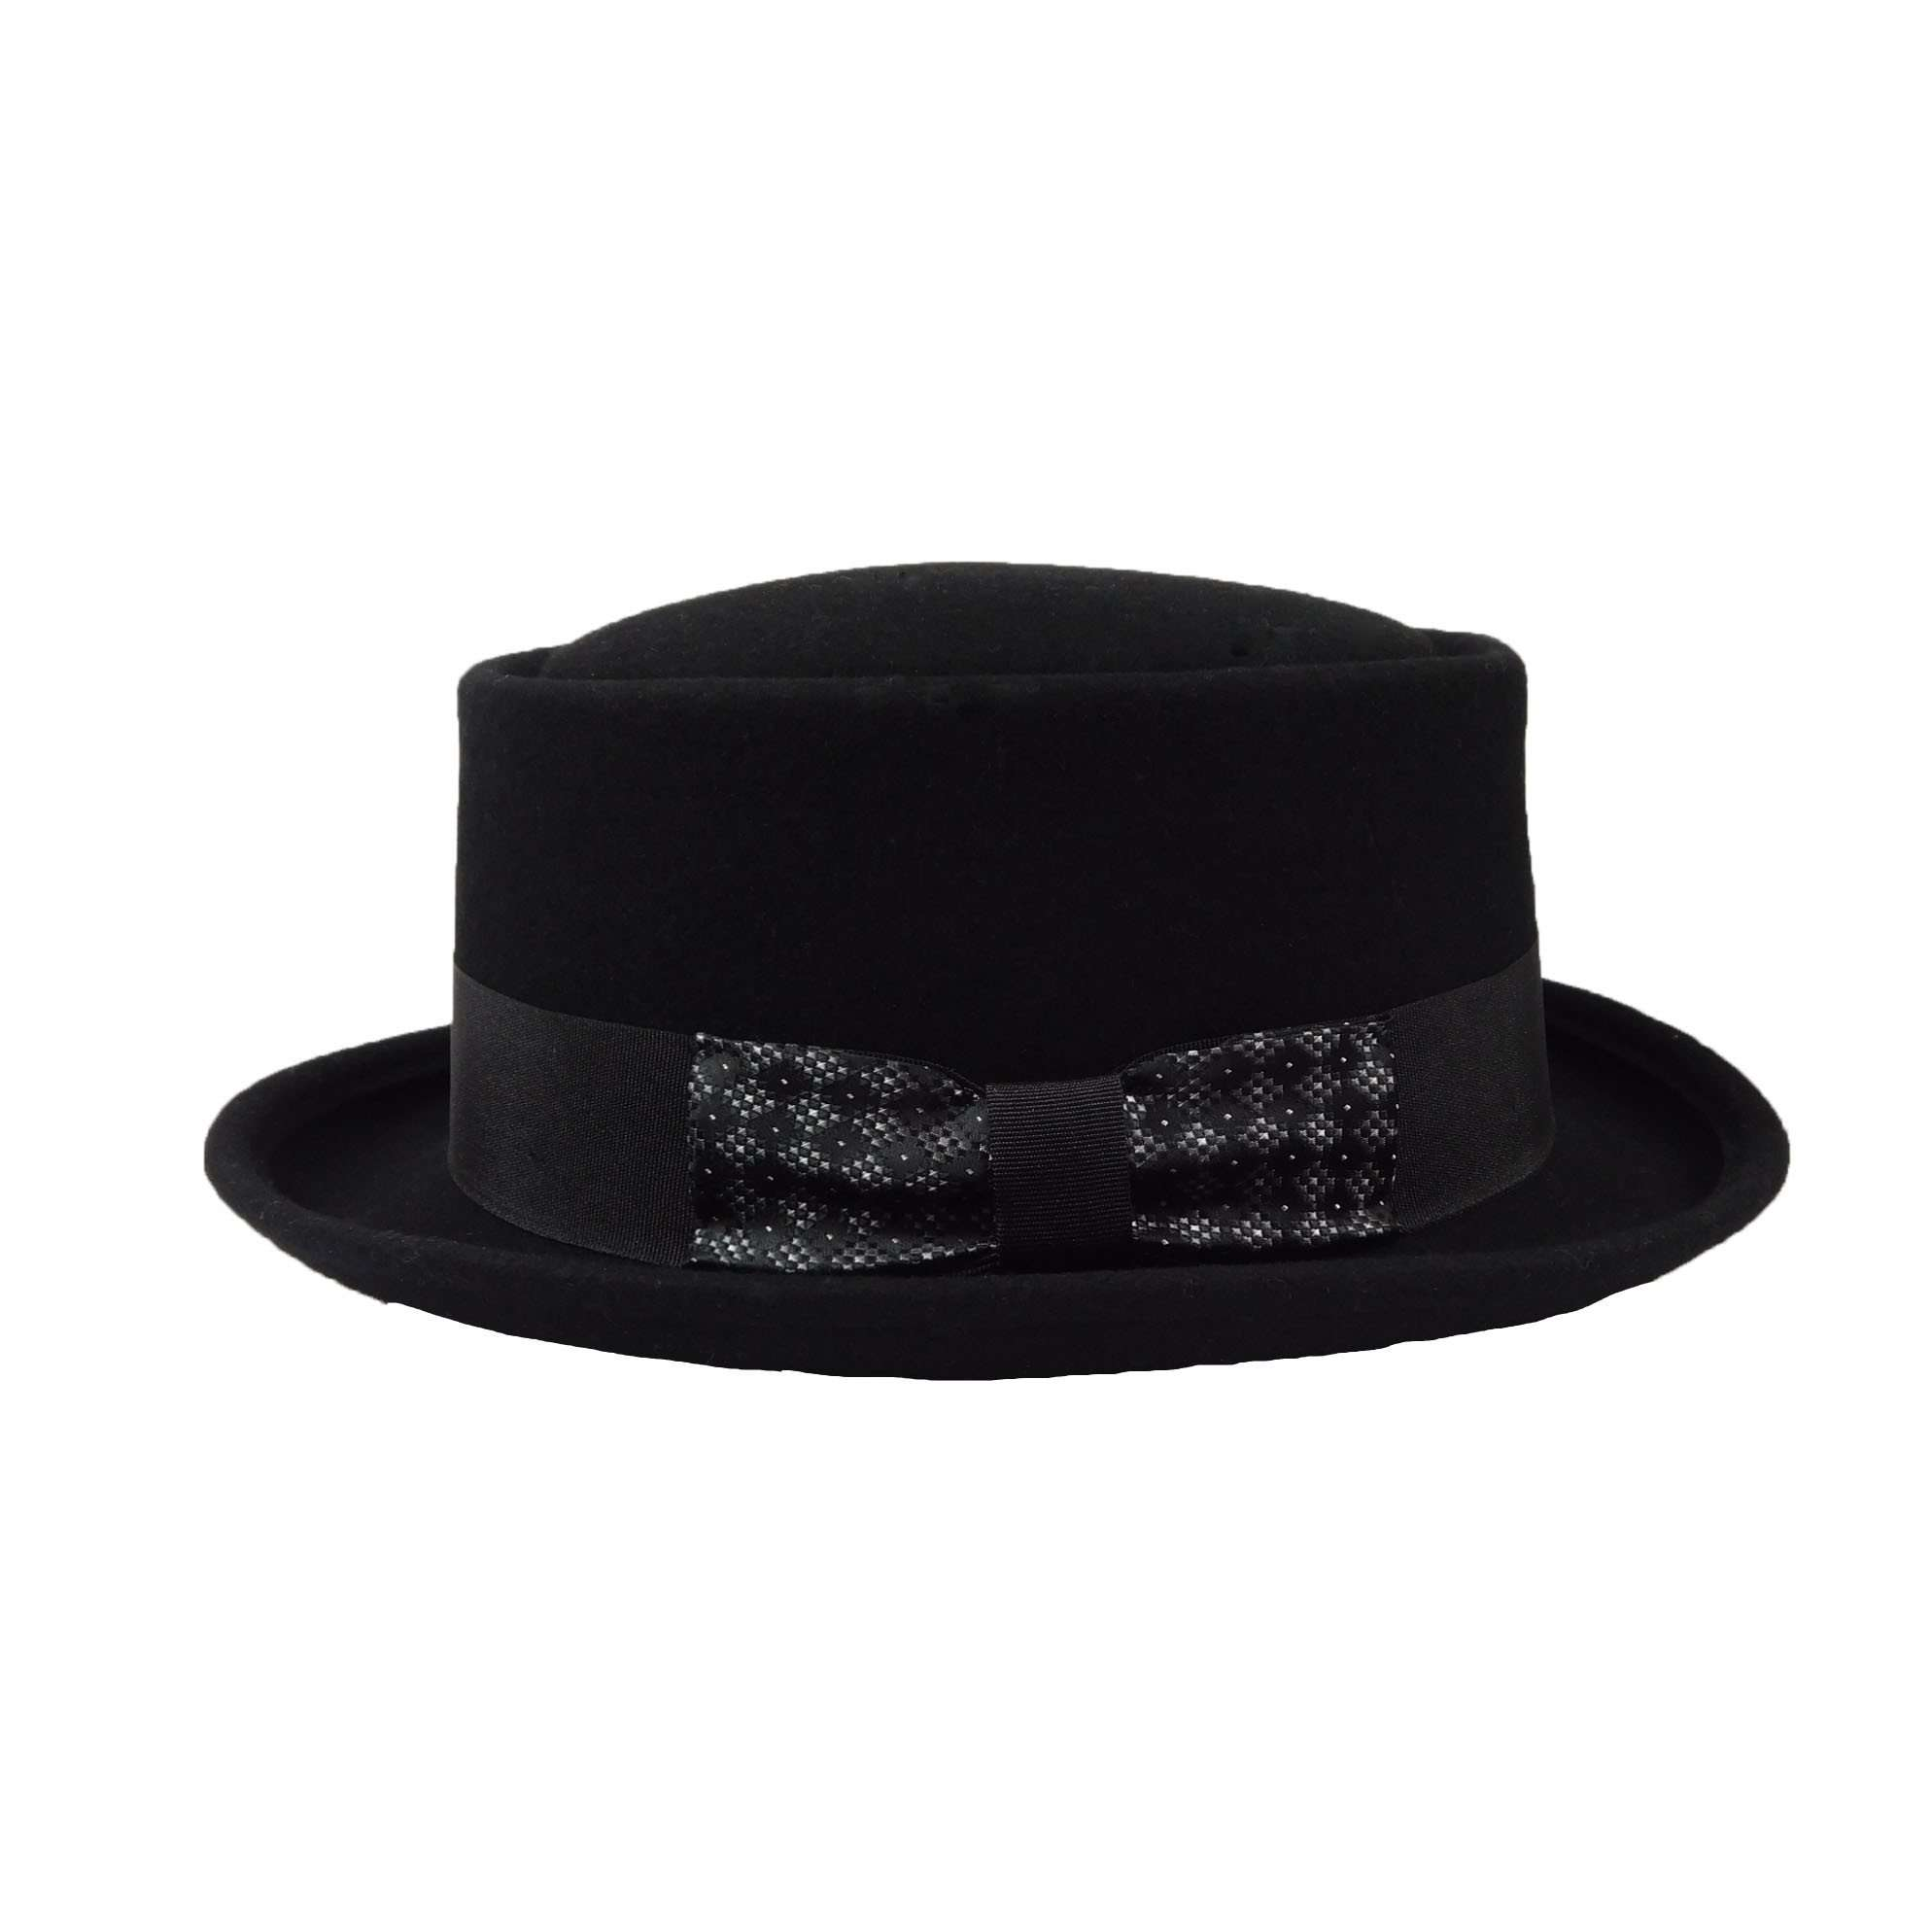 Gambler - Heisenberg Wool Felt Black by JSA for Men - Large - SetarTrading Hats